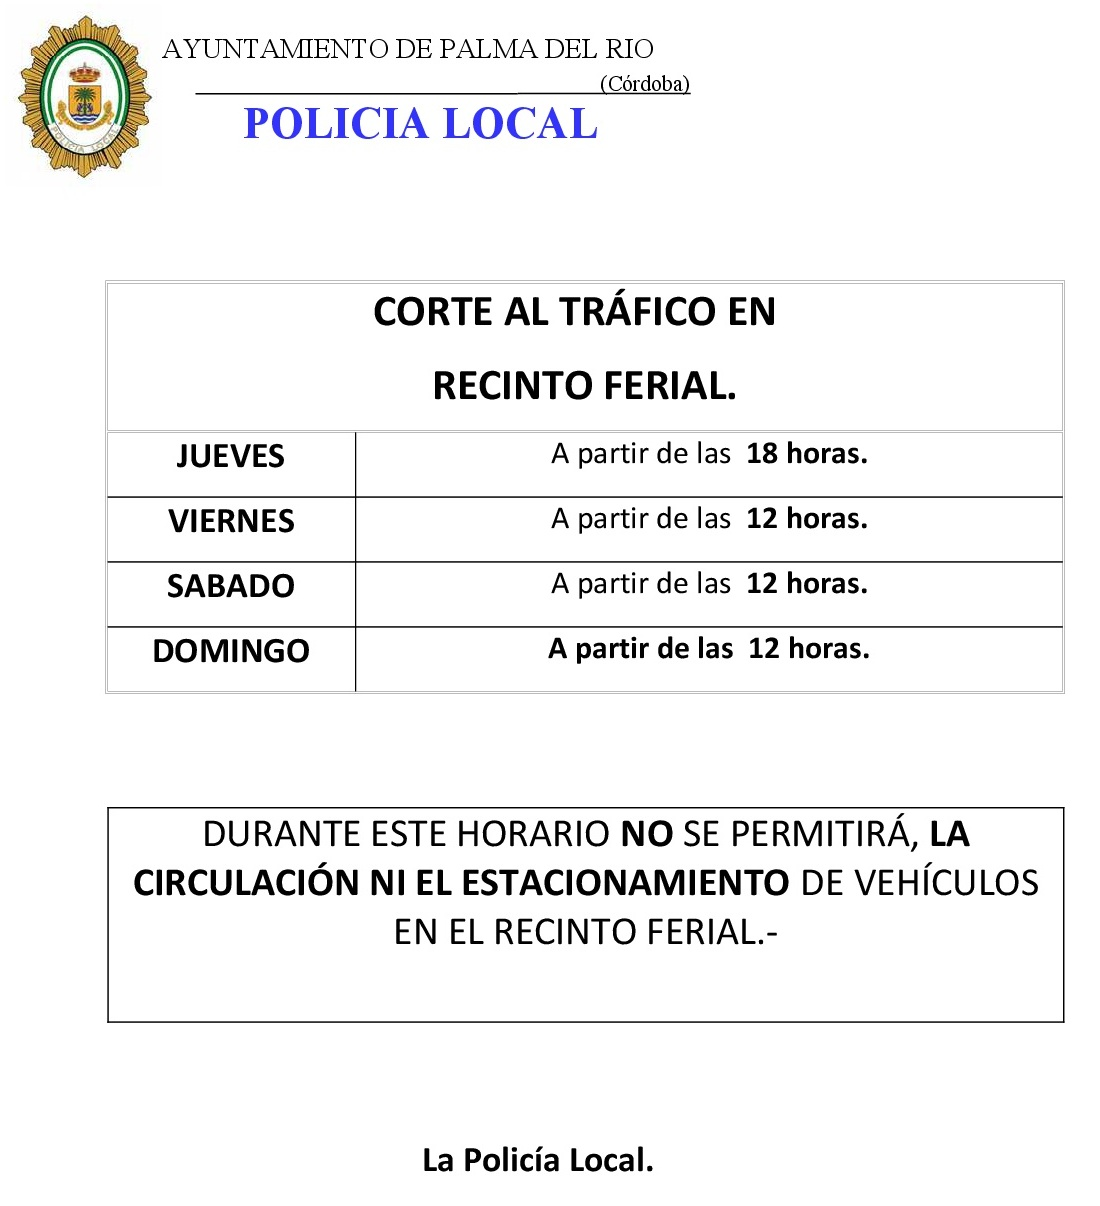 https://www.palmadelrio.es/sites/default/files/corte_trafico_recinto_ferial-001.jpg